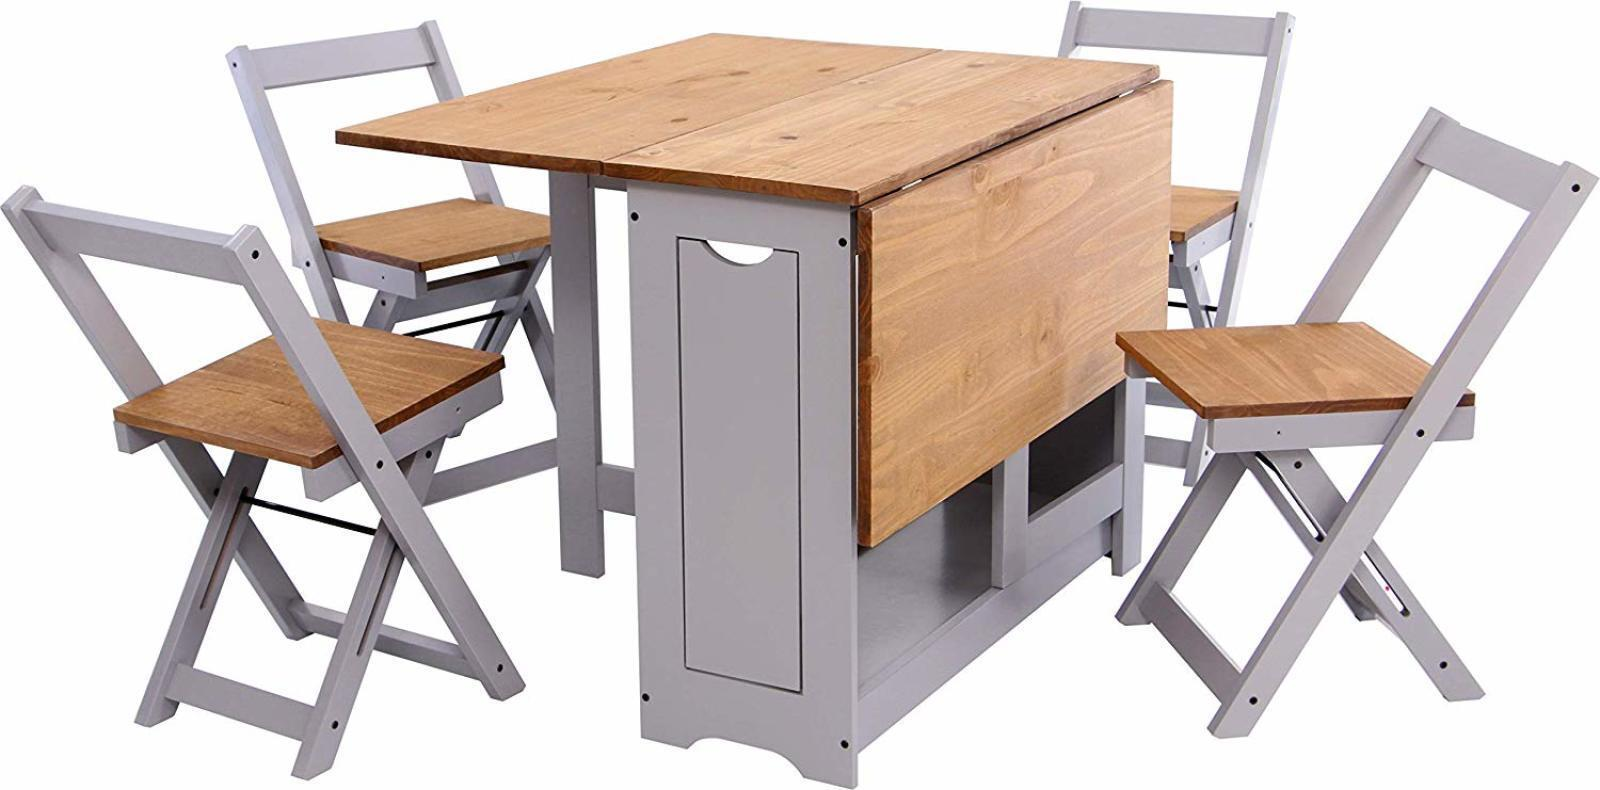 Space Saving Extending Dining Table And 4 Chairs Folding Kitchen